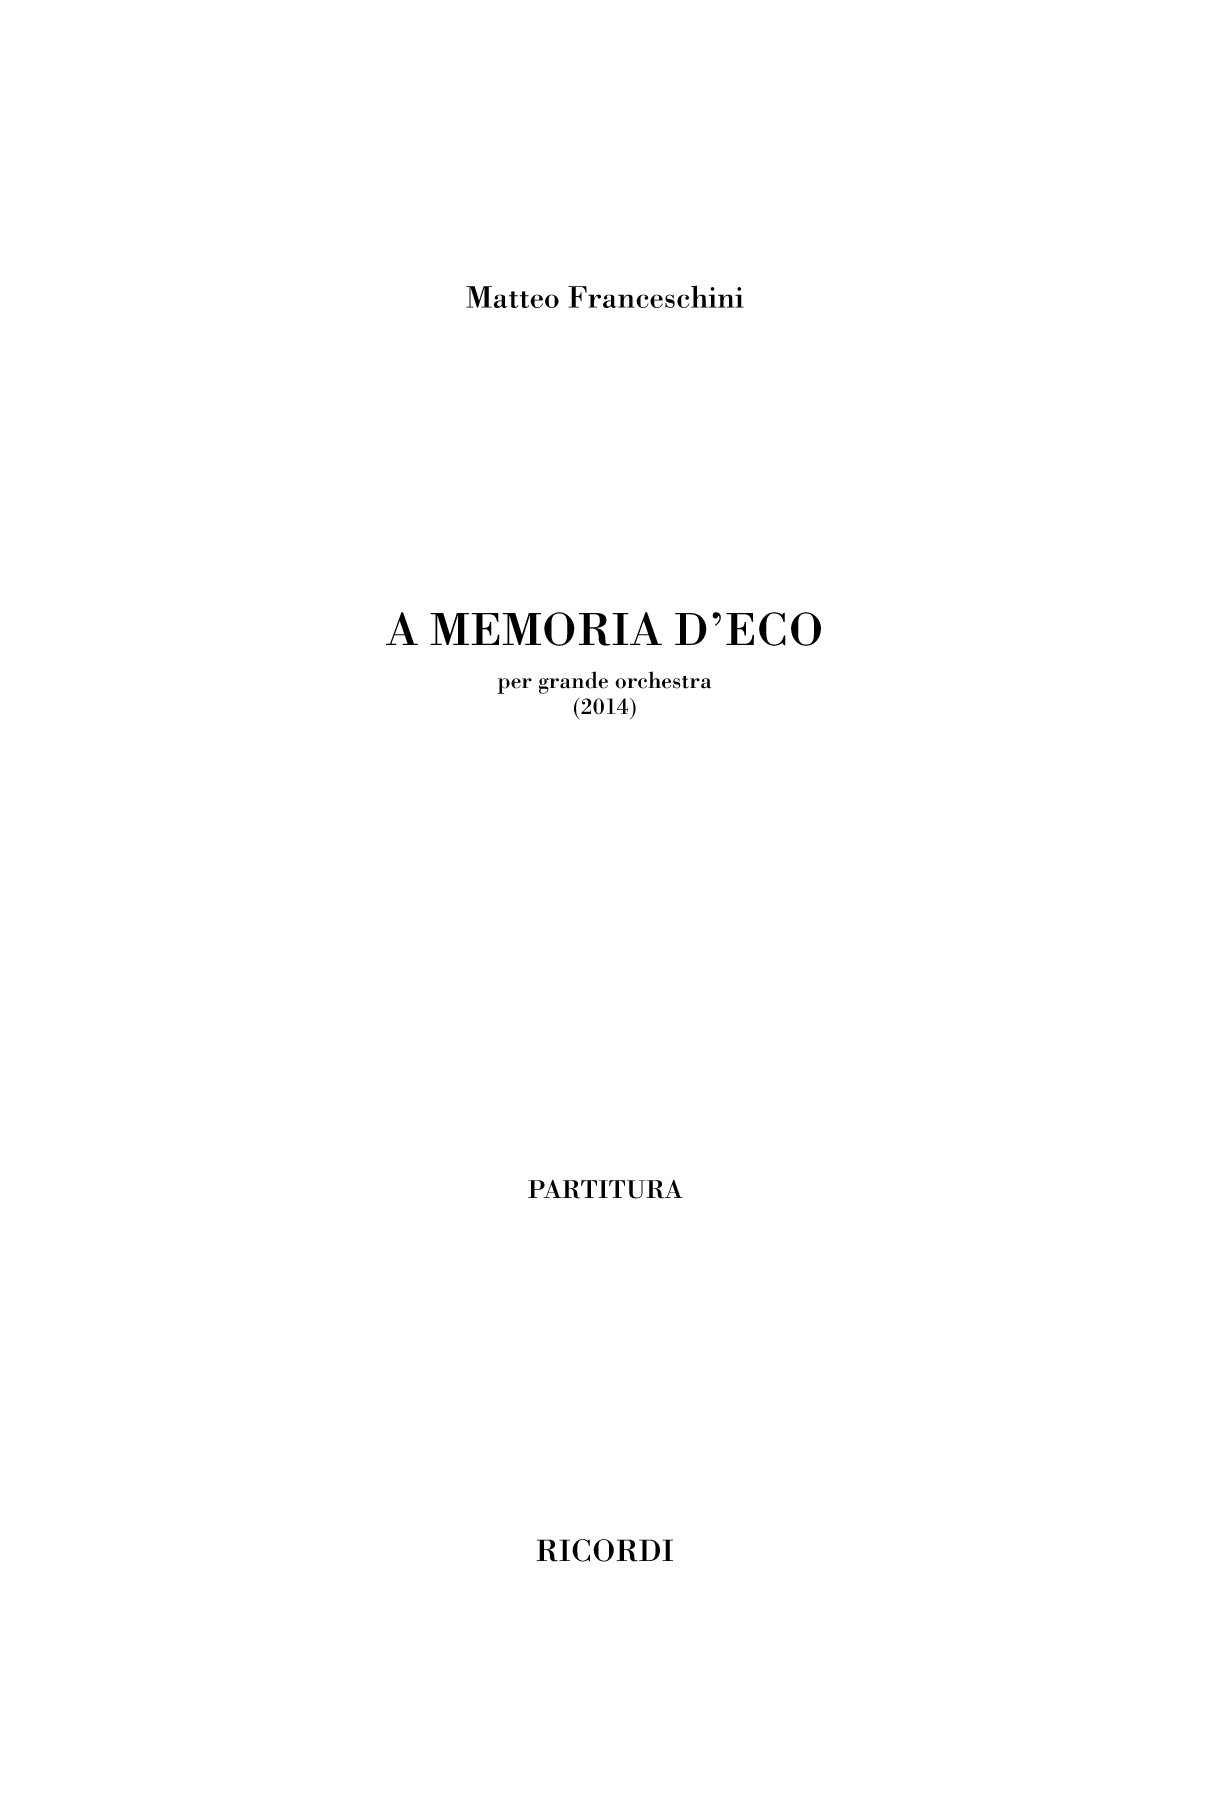 A memoria d'eco (flipbook)